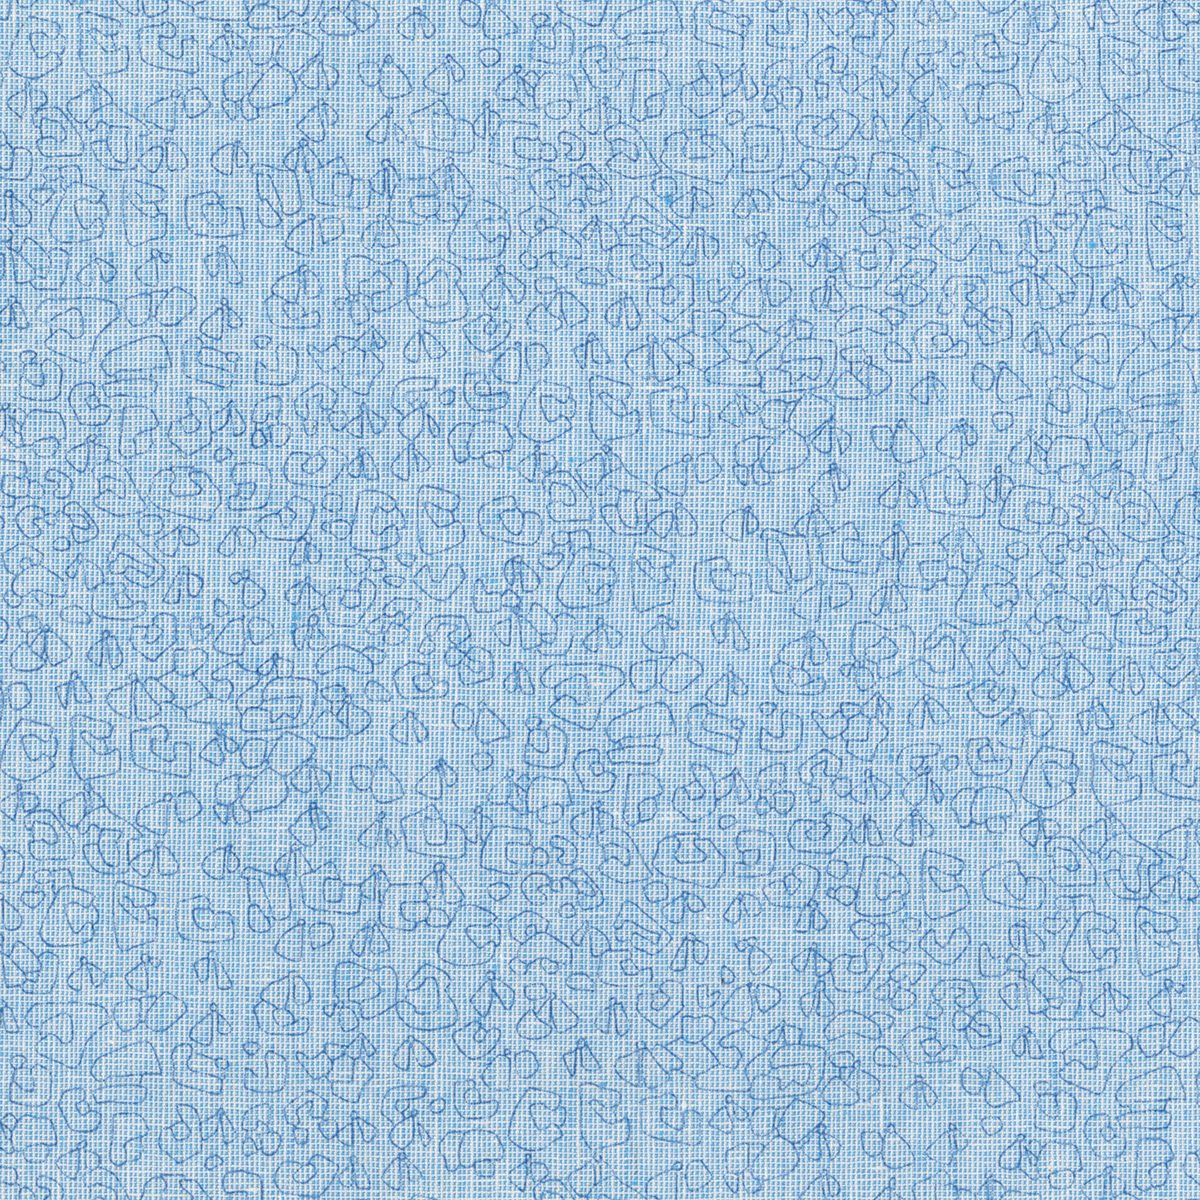 Robert Kaufman - Carolyn Friedlander - Polk - Spots - Paris Blue